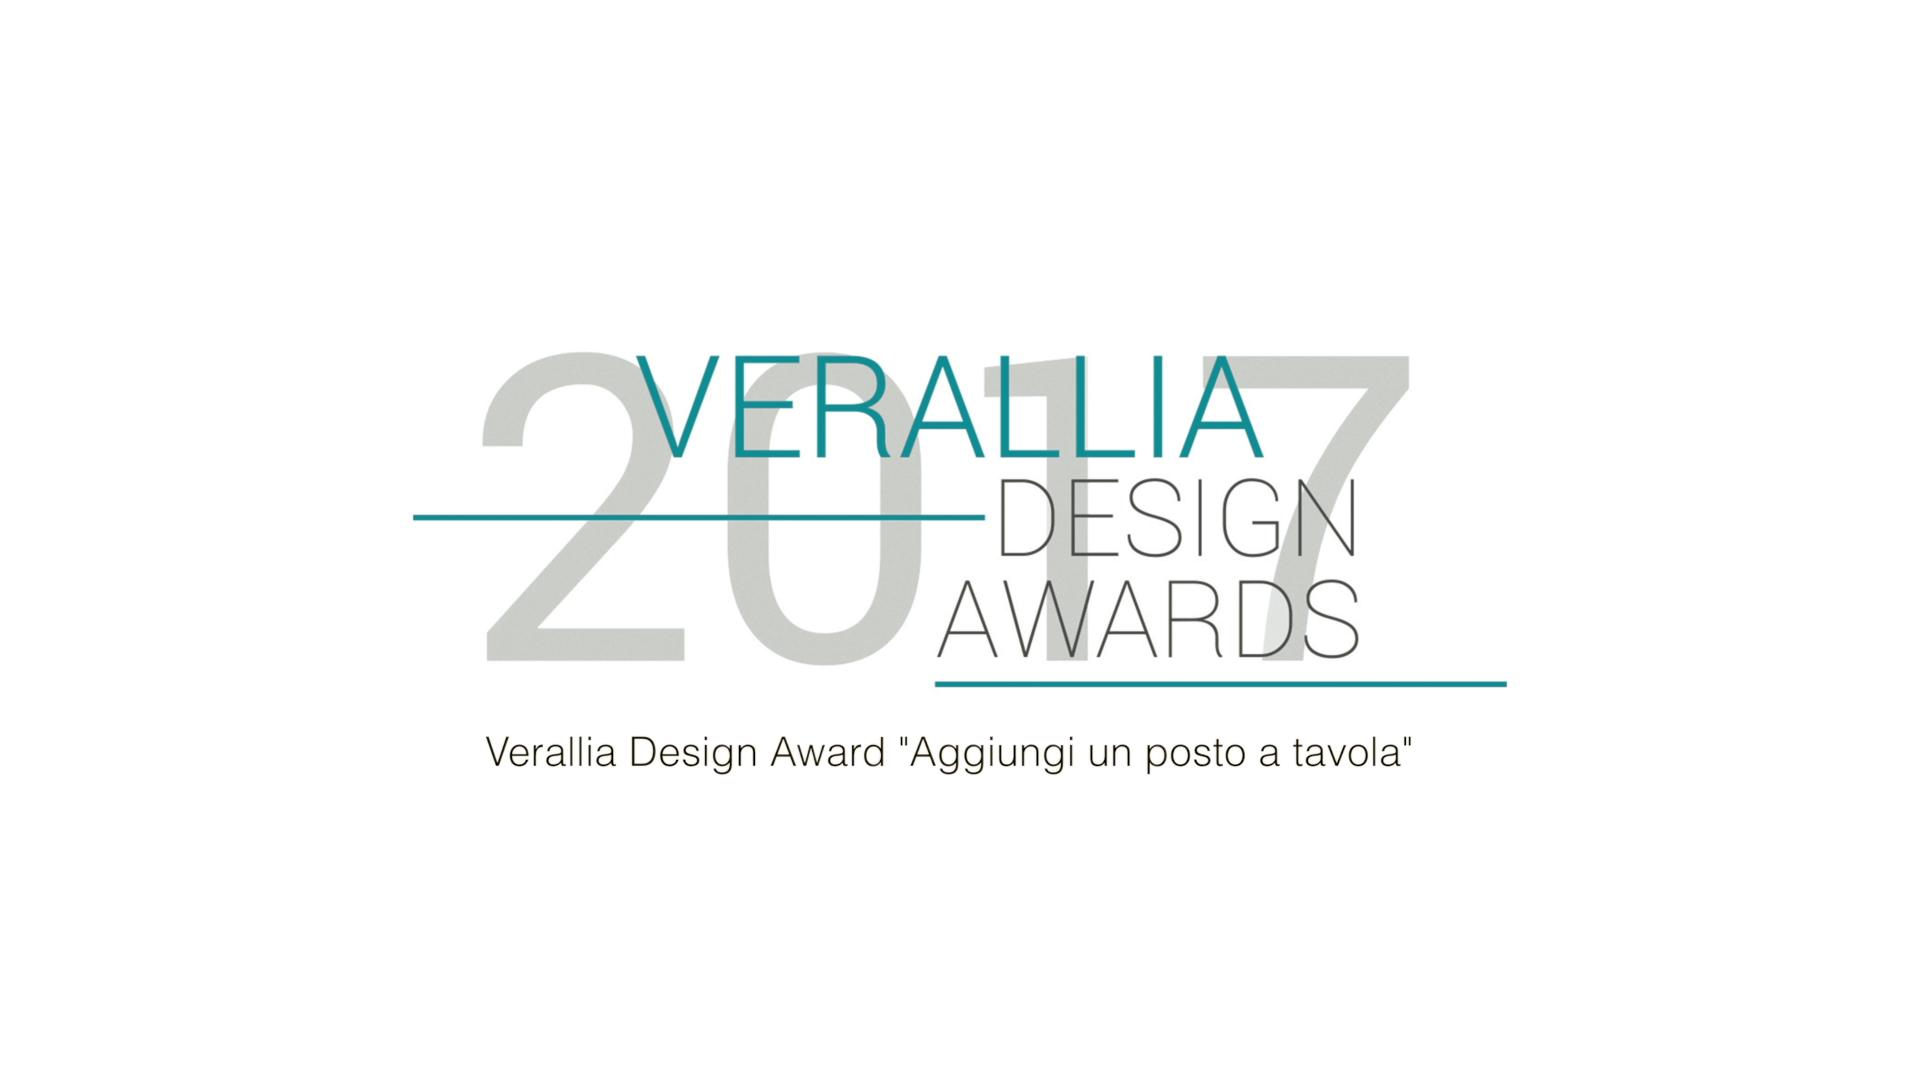 Verallia Italia Design Awards 2017